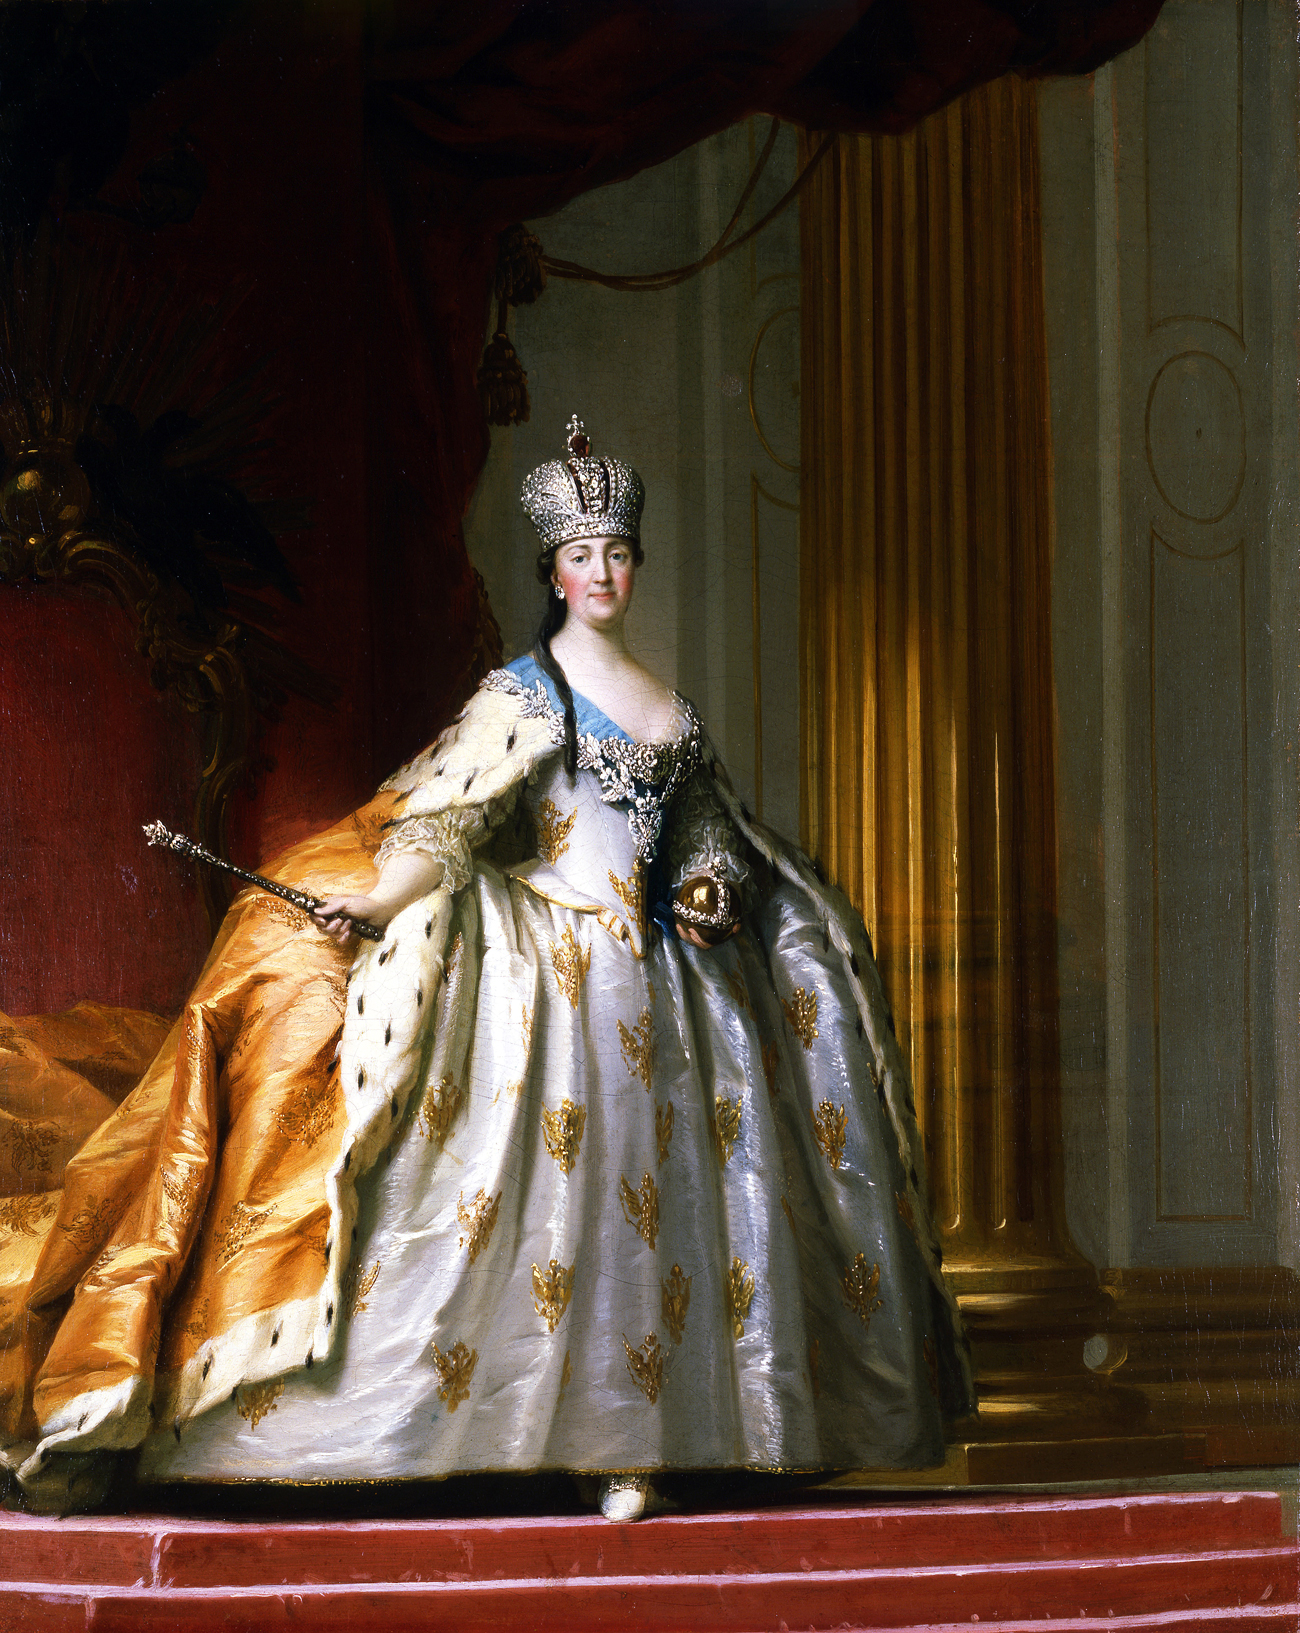 L'imperatrice Caterina II. Fonte: Getty Images